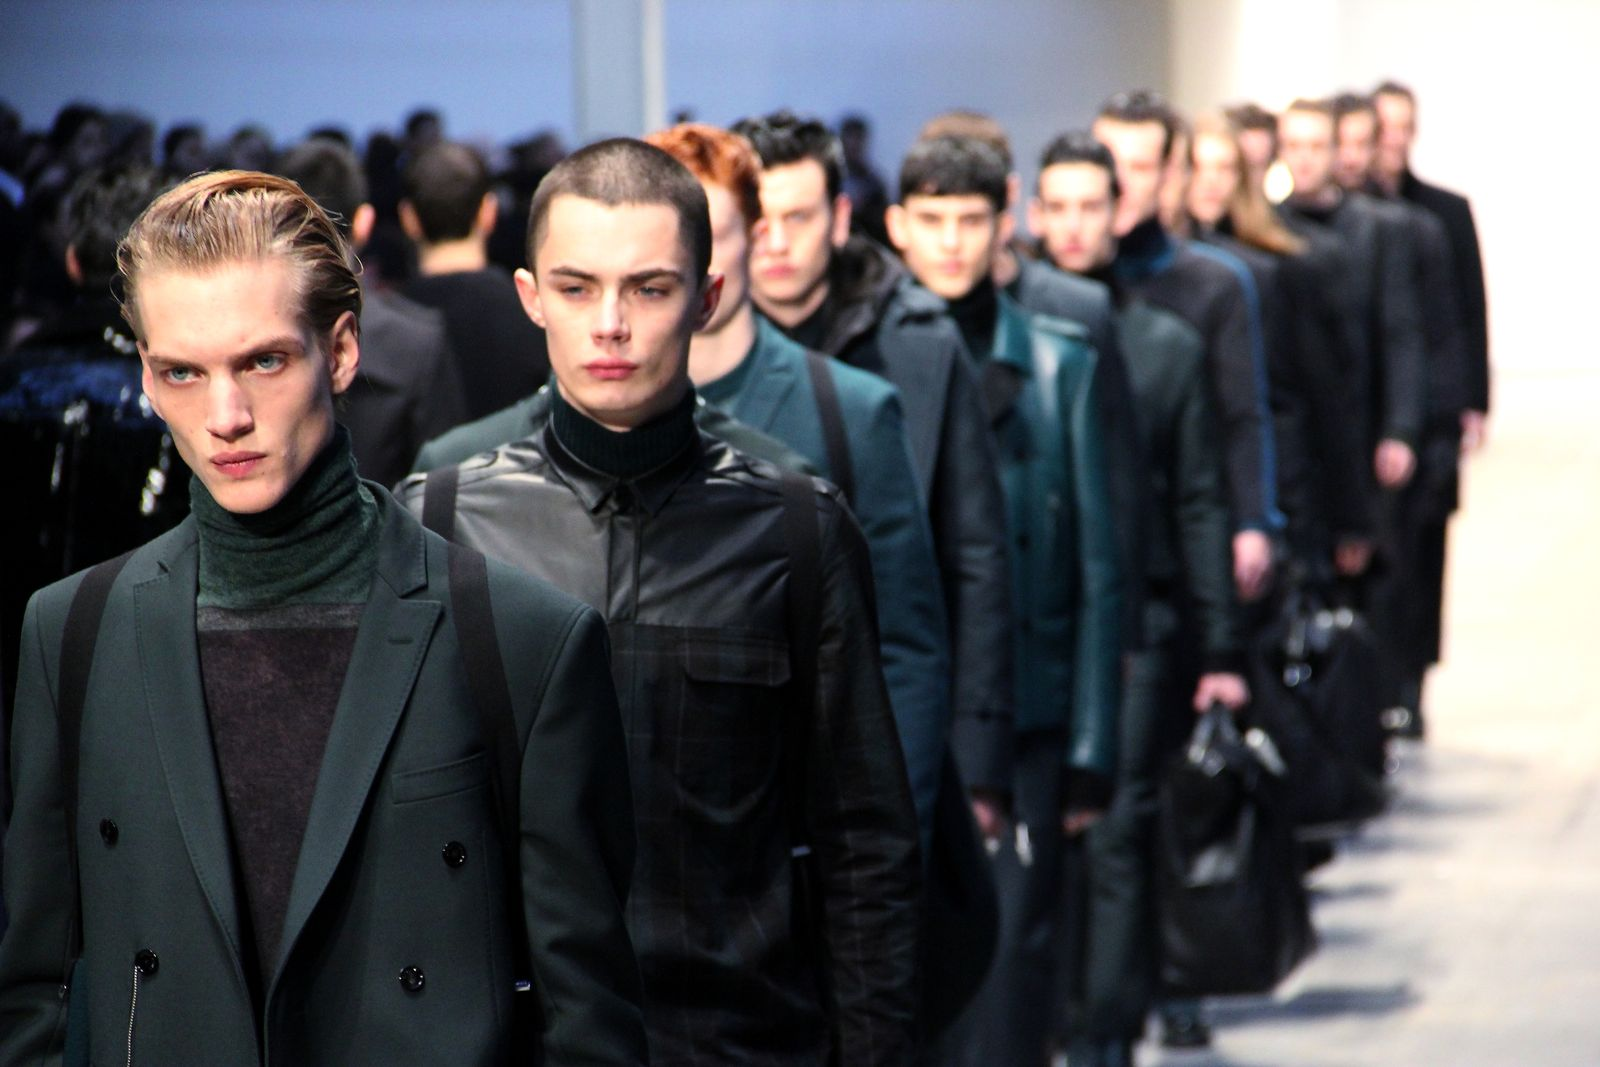 London Men's Autumn/Winter Fashion Week